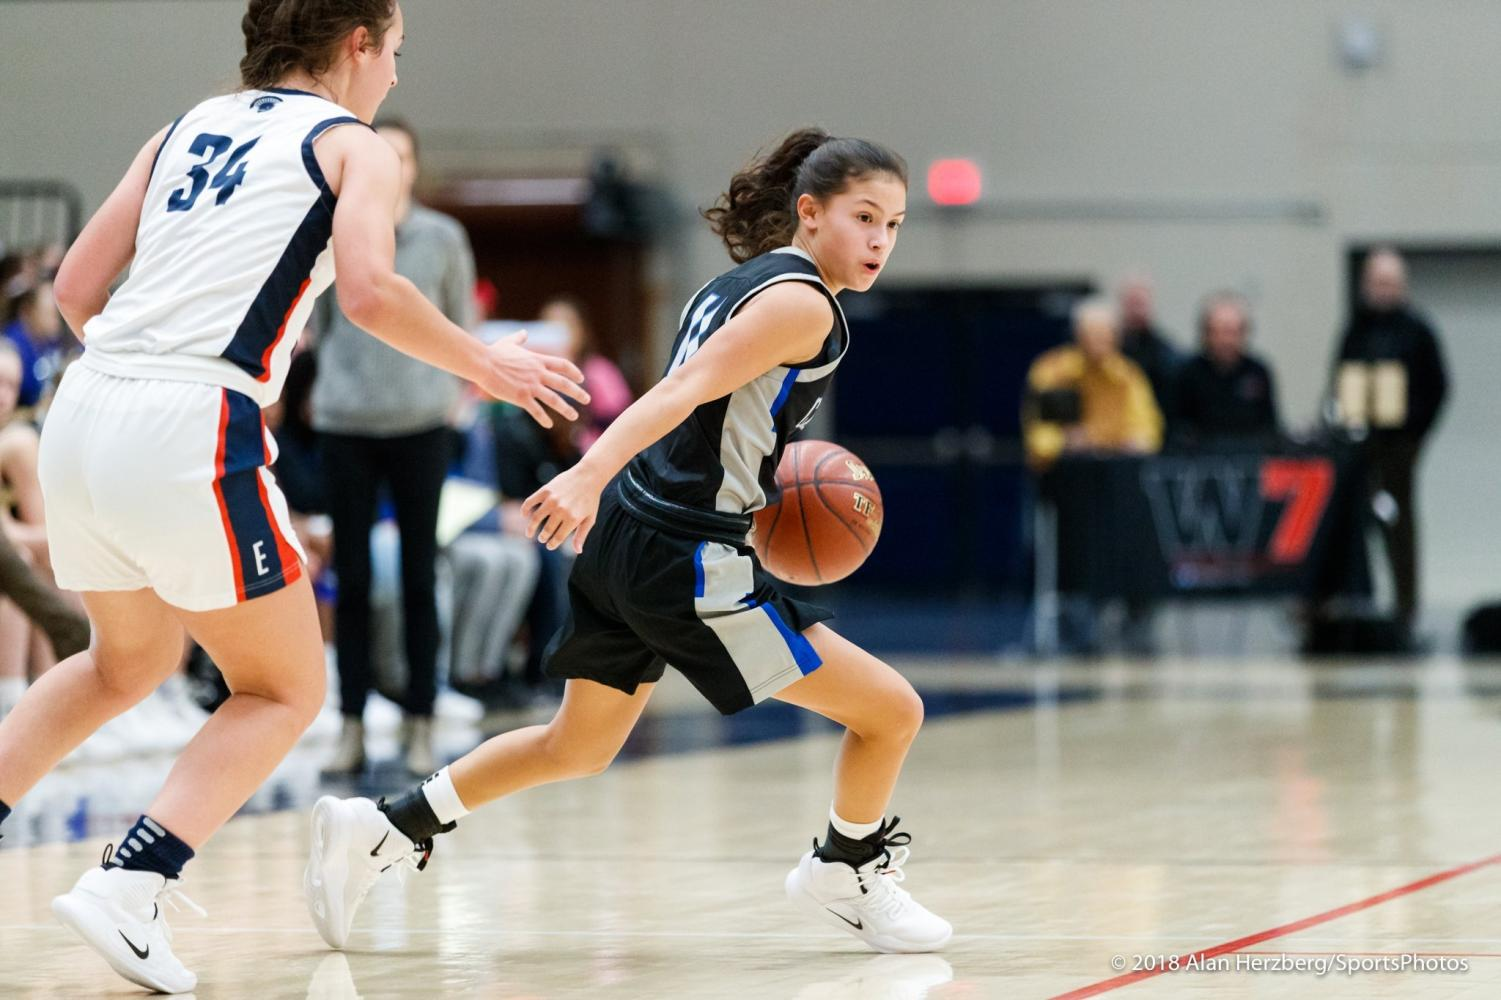 Varsity player CJ Romero ('21) drives the ball to the basket with intense concentration, an opposing player on her tail.